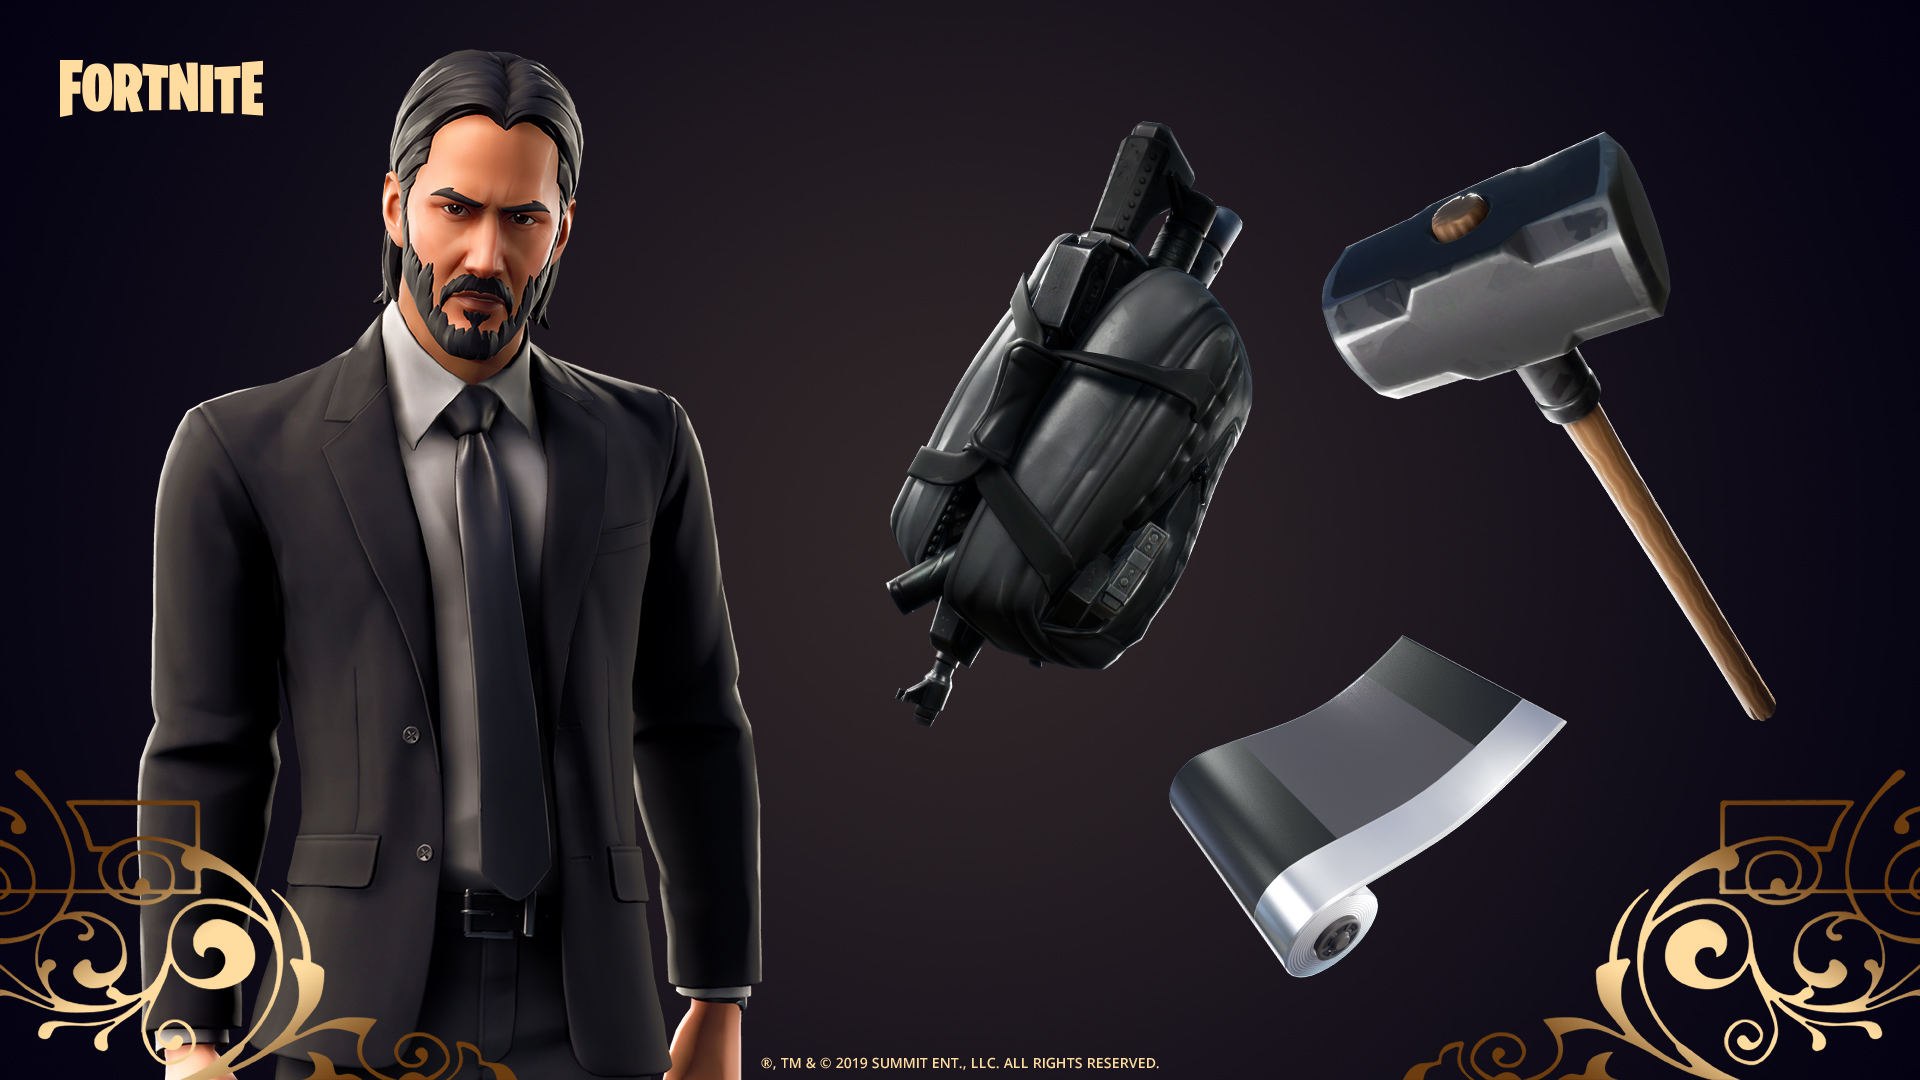 Fortnite launches John Wick crossover with special challenges, skins and more